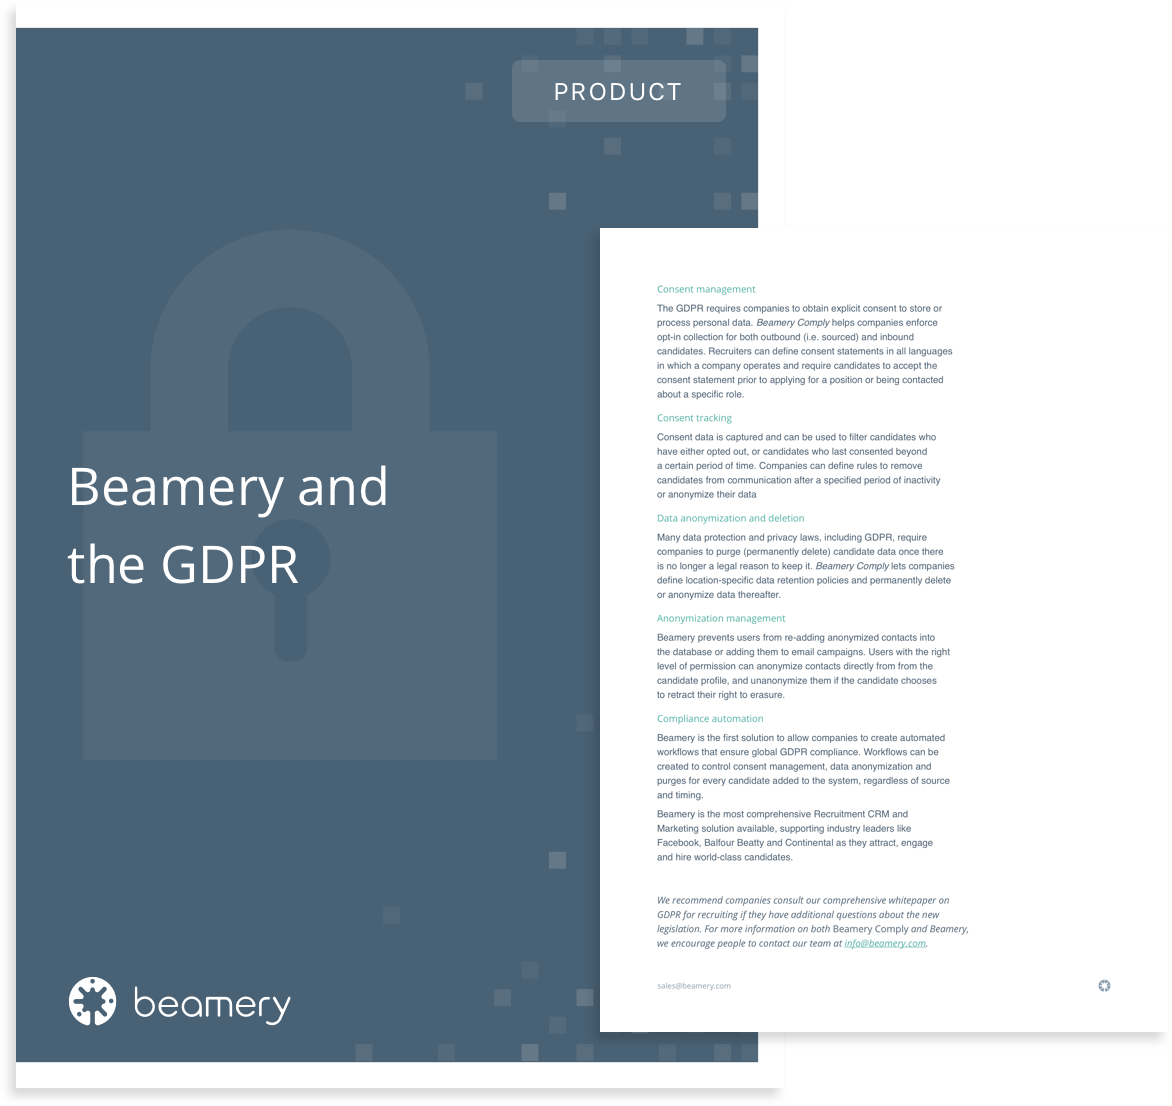 Beamery and the GDPR image